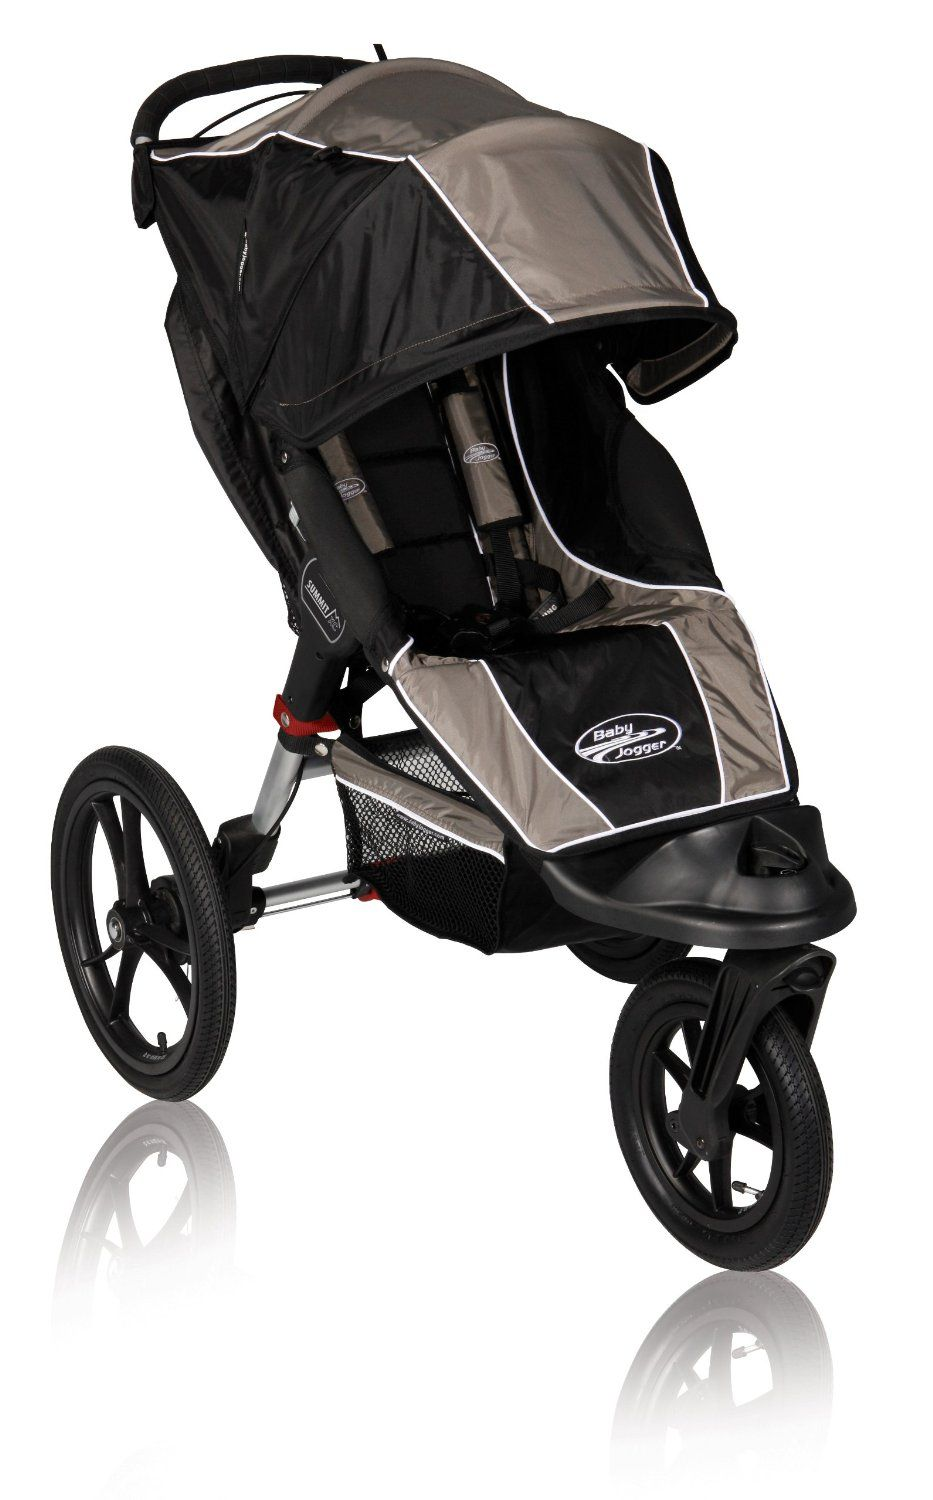 Jogging Stroller Review Baby Jogger Baby jogger, Best